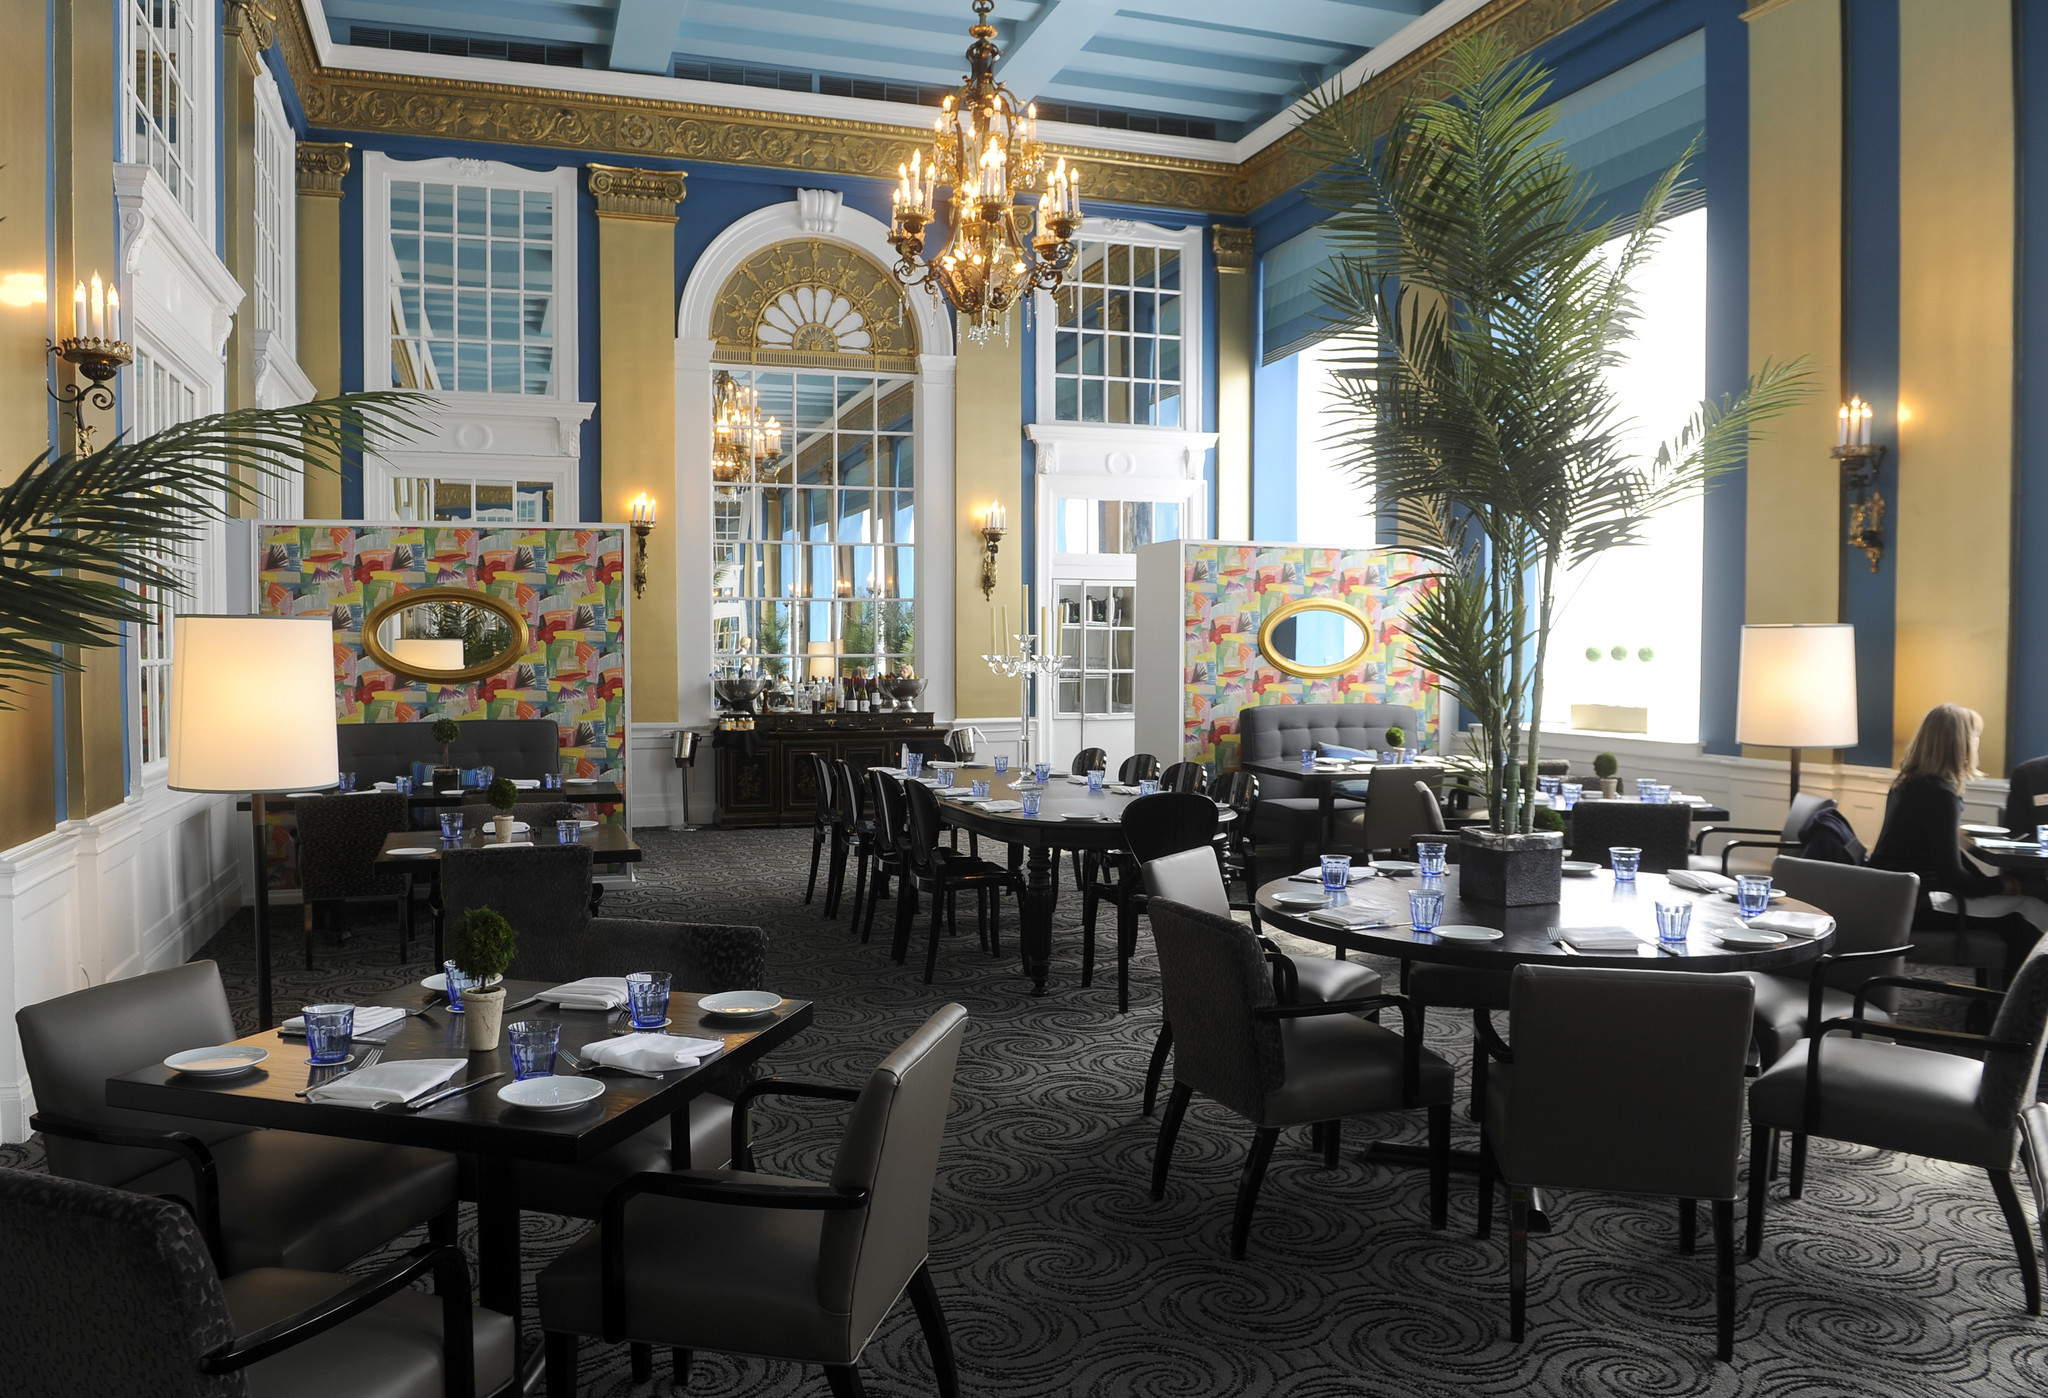 Chef changes at the lord baltimore hotel baltimore sun for Lord of baltimore hotel